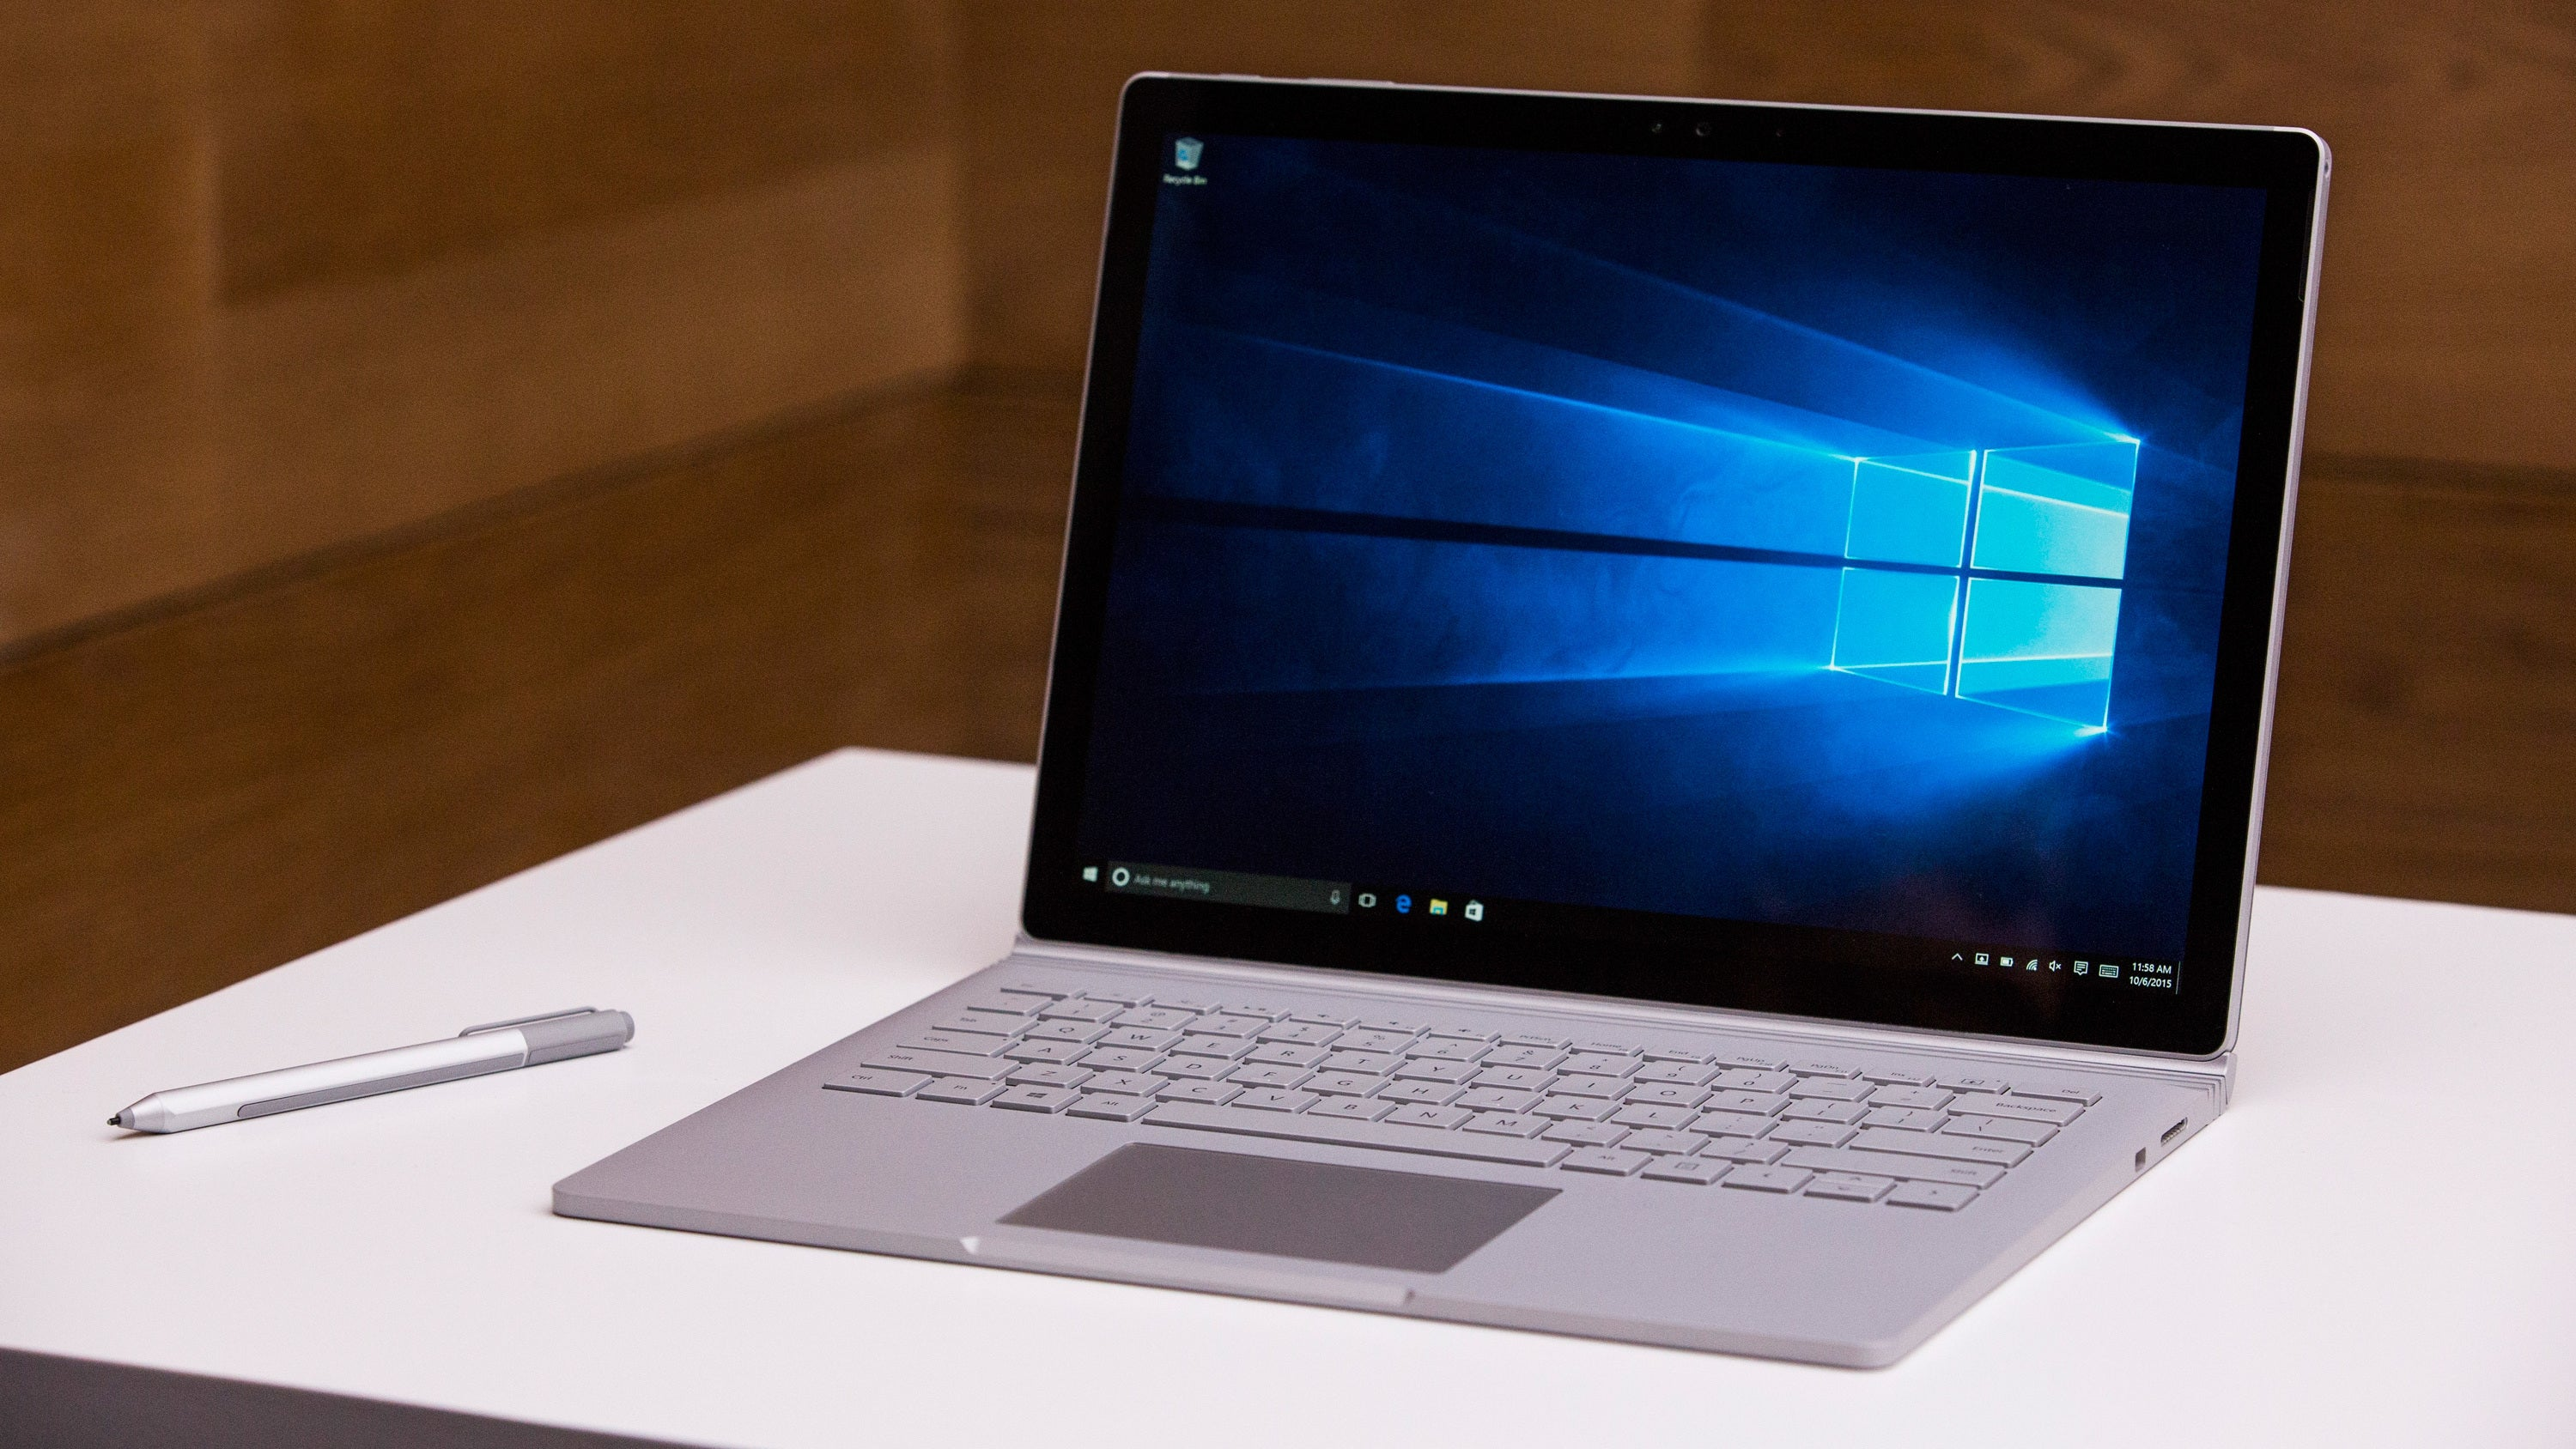 Microsoft Finally Agrees To Replace Surface Pro 4s With Horrible Screen Flickering That Can't Be Patched